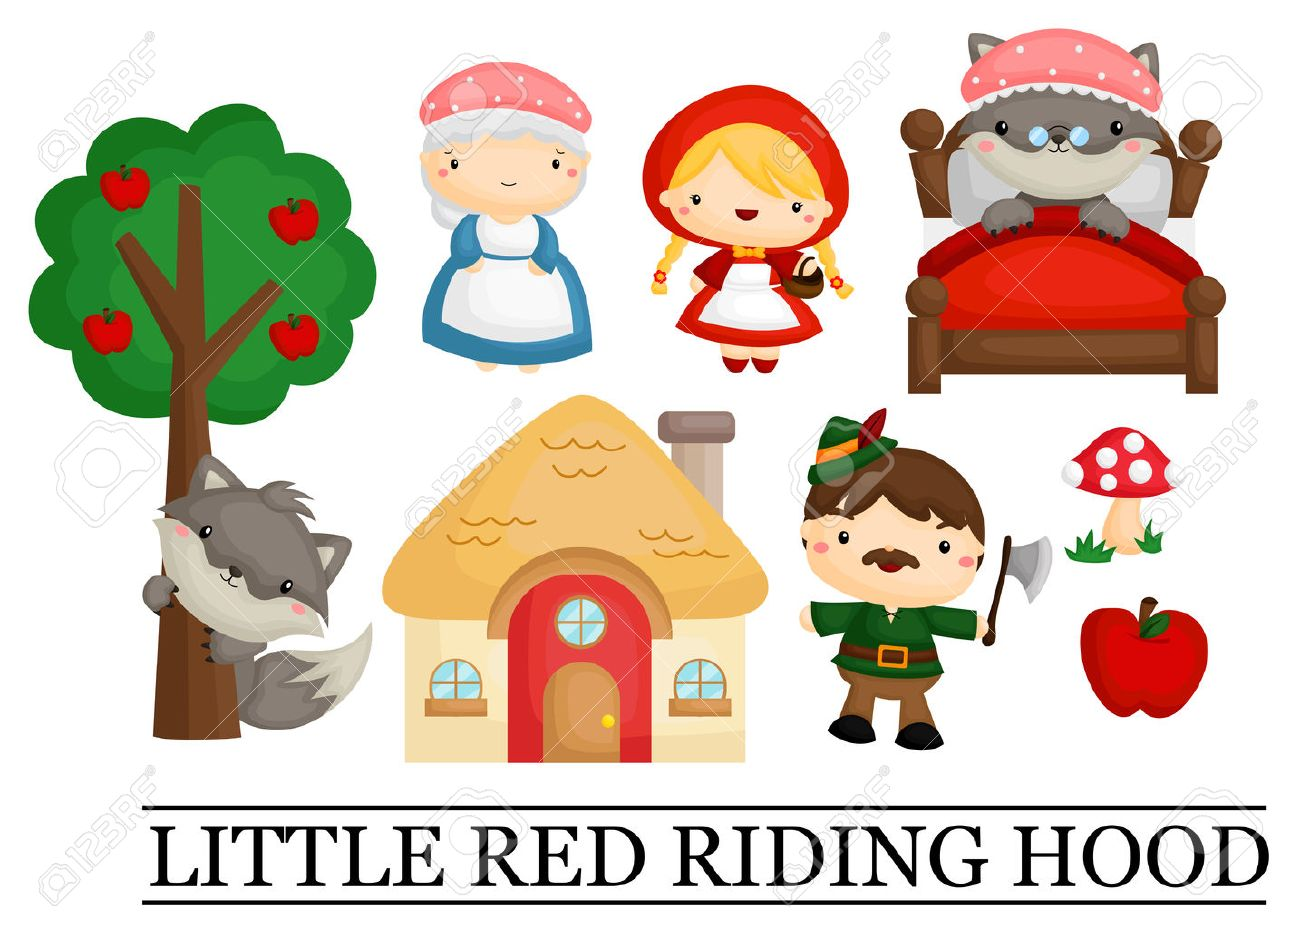 little red riding hood royalty free cliparts vectors and stock rh 123rf com little red riding hood characters clipart little red riding hood wolf clipart